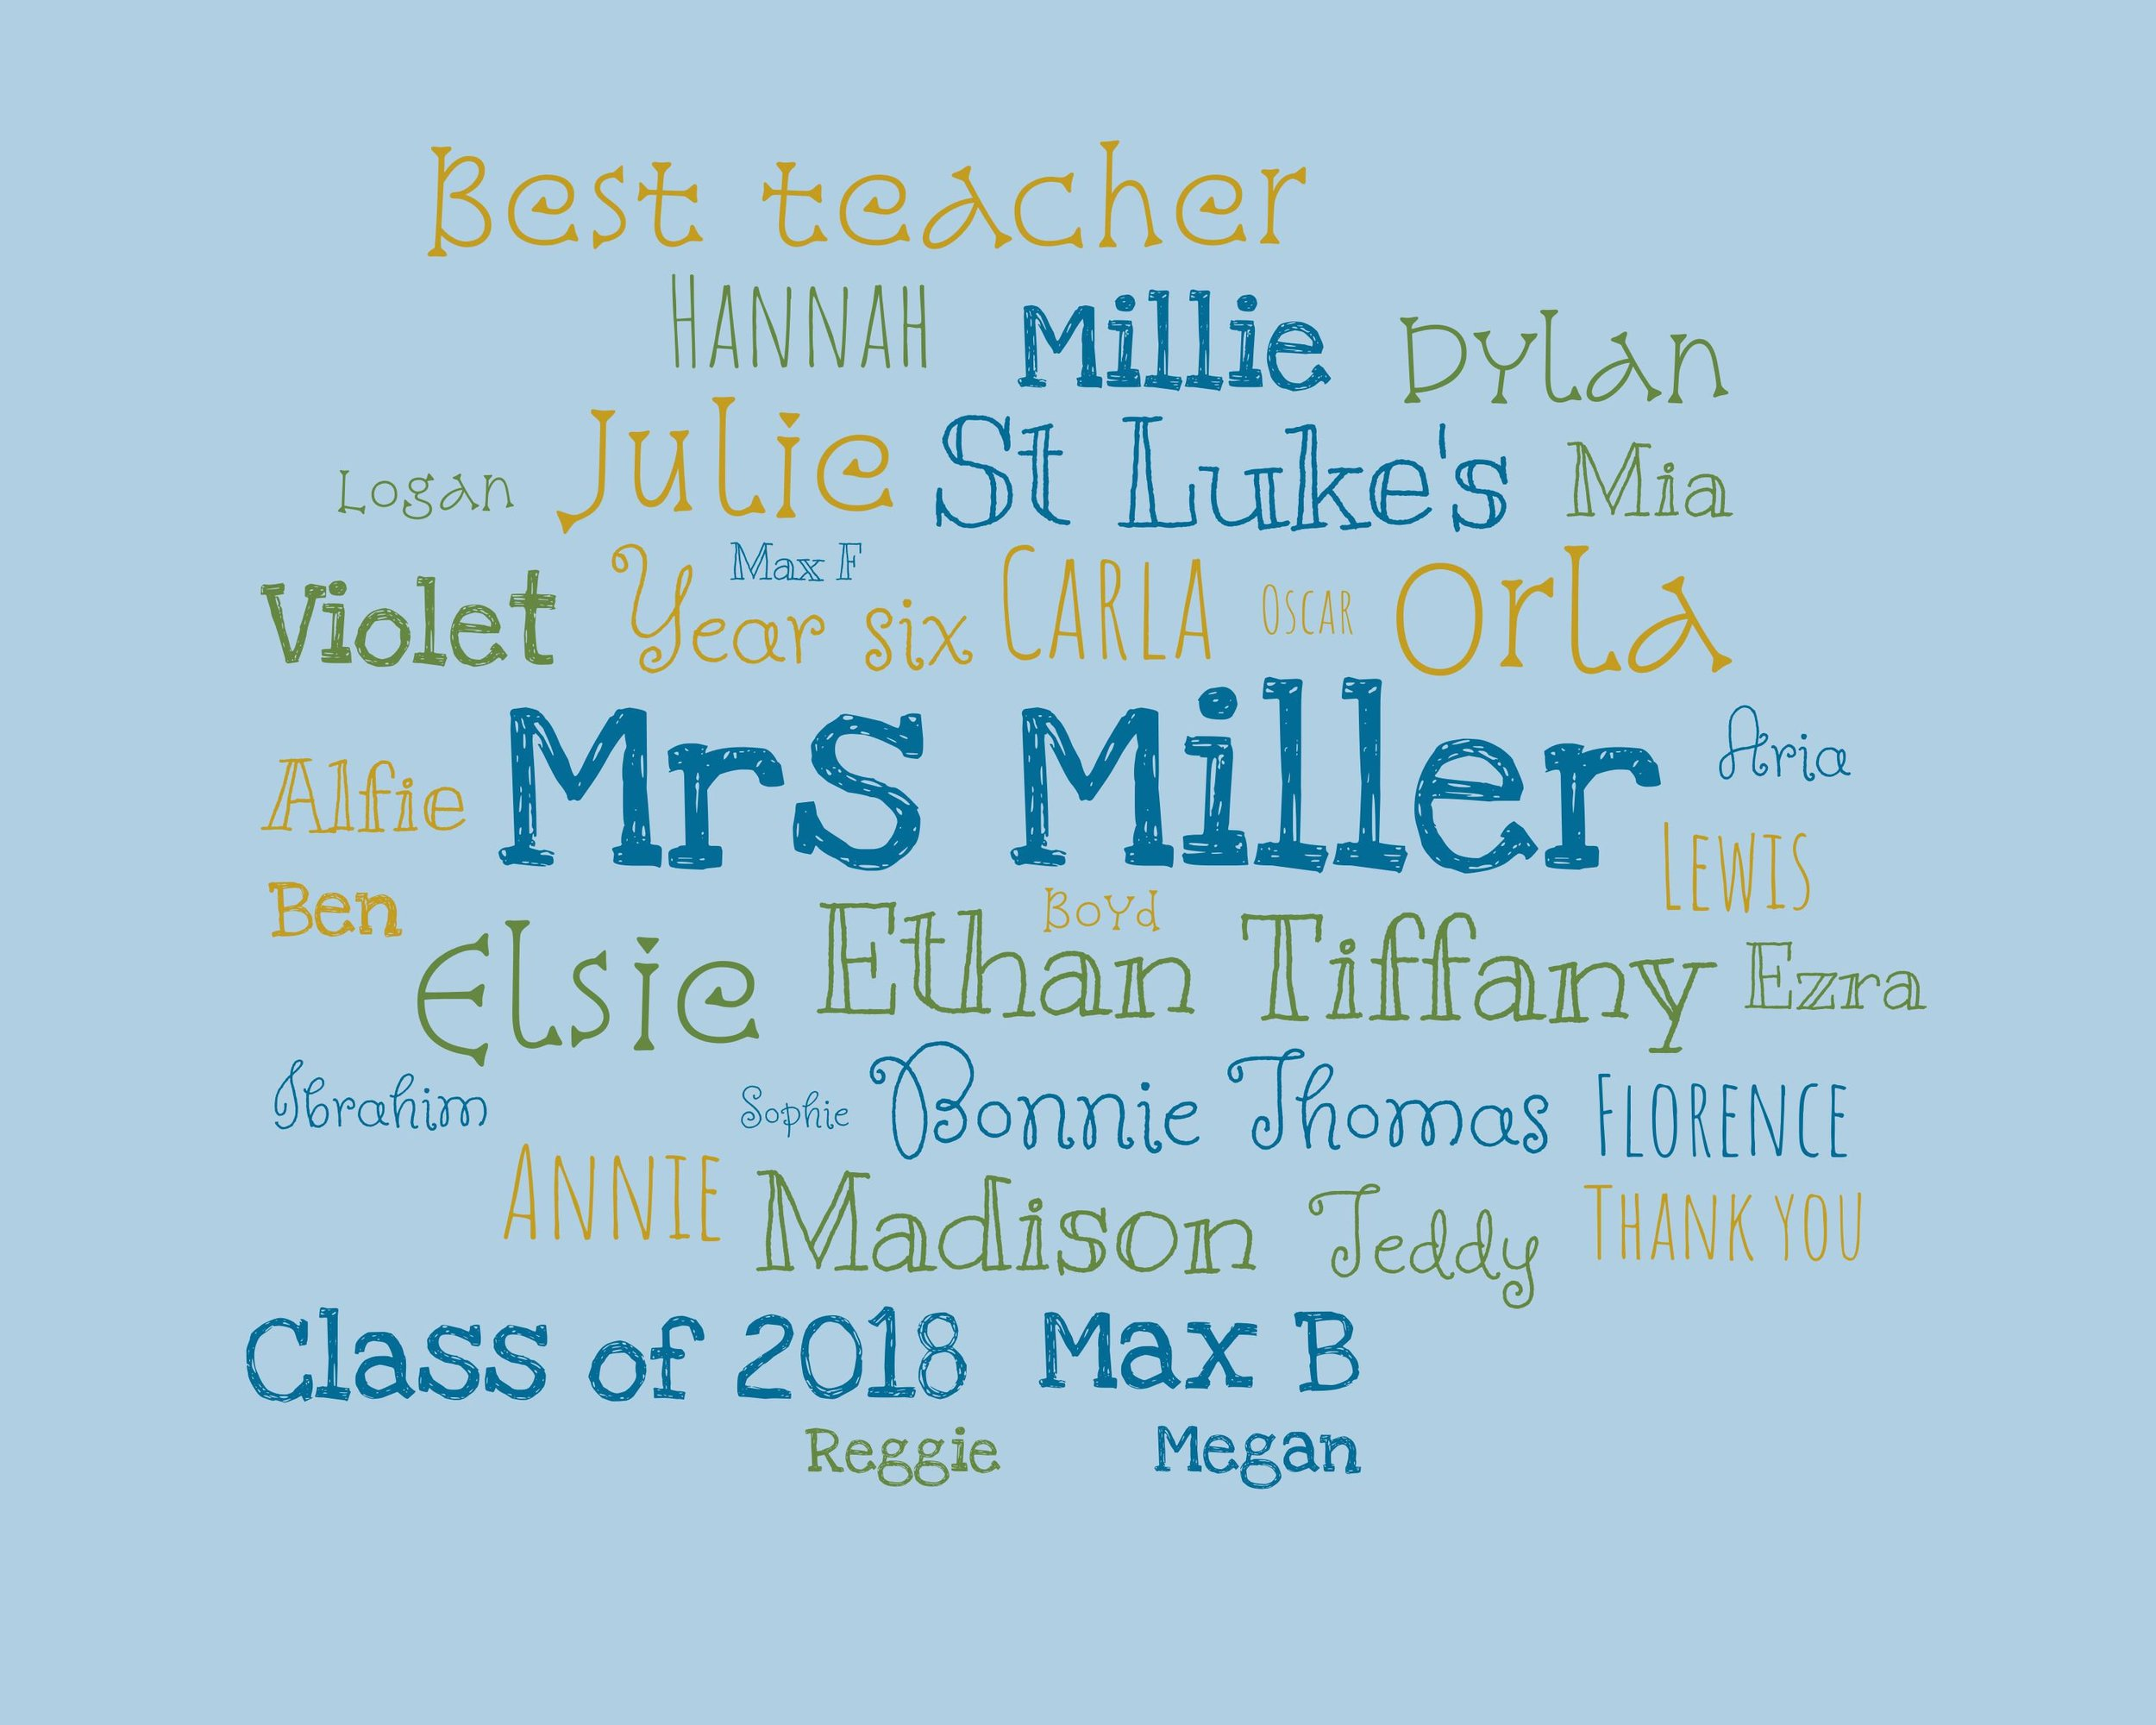 Word Cloud - Here's a sweet way to say thank you to a cherished teacher. Use the design to commemorate a particular class and the highlights of your time together